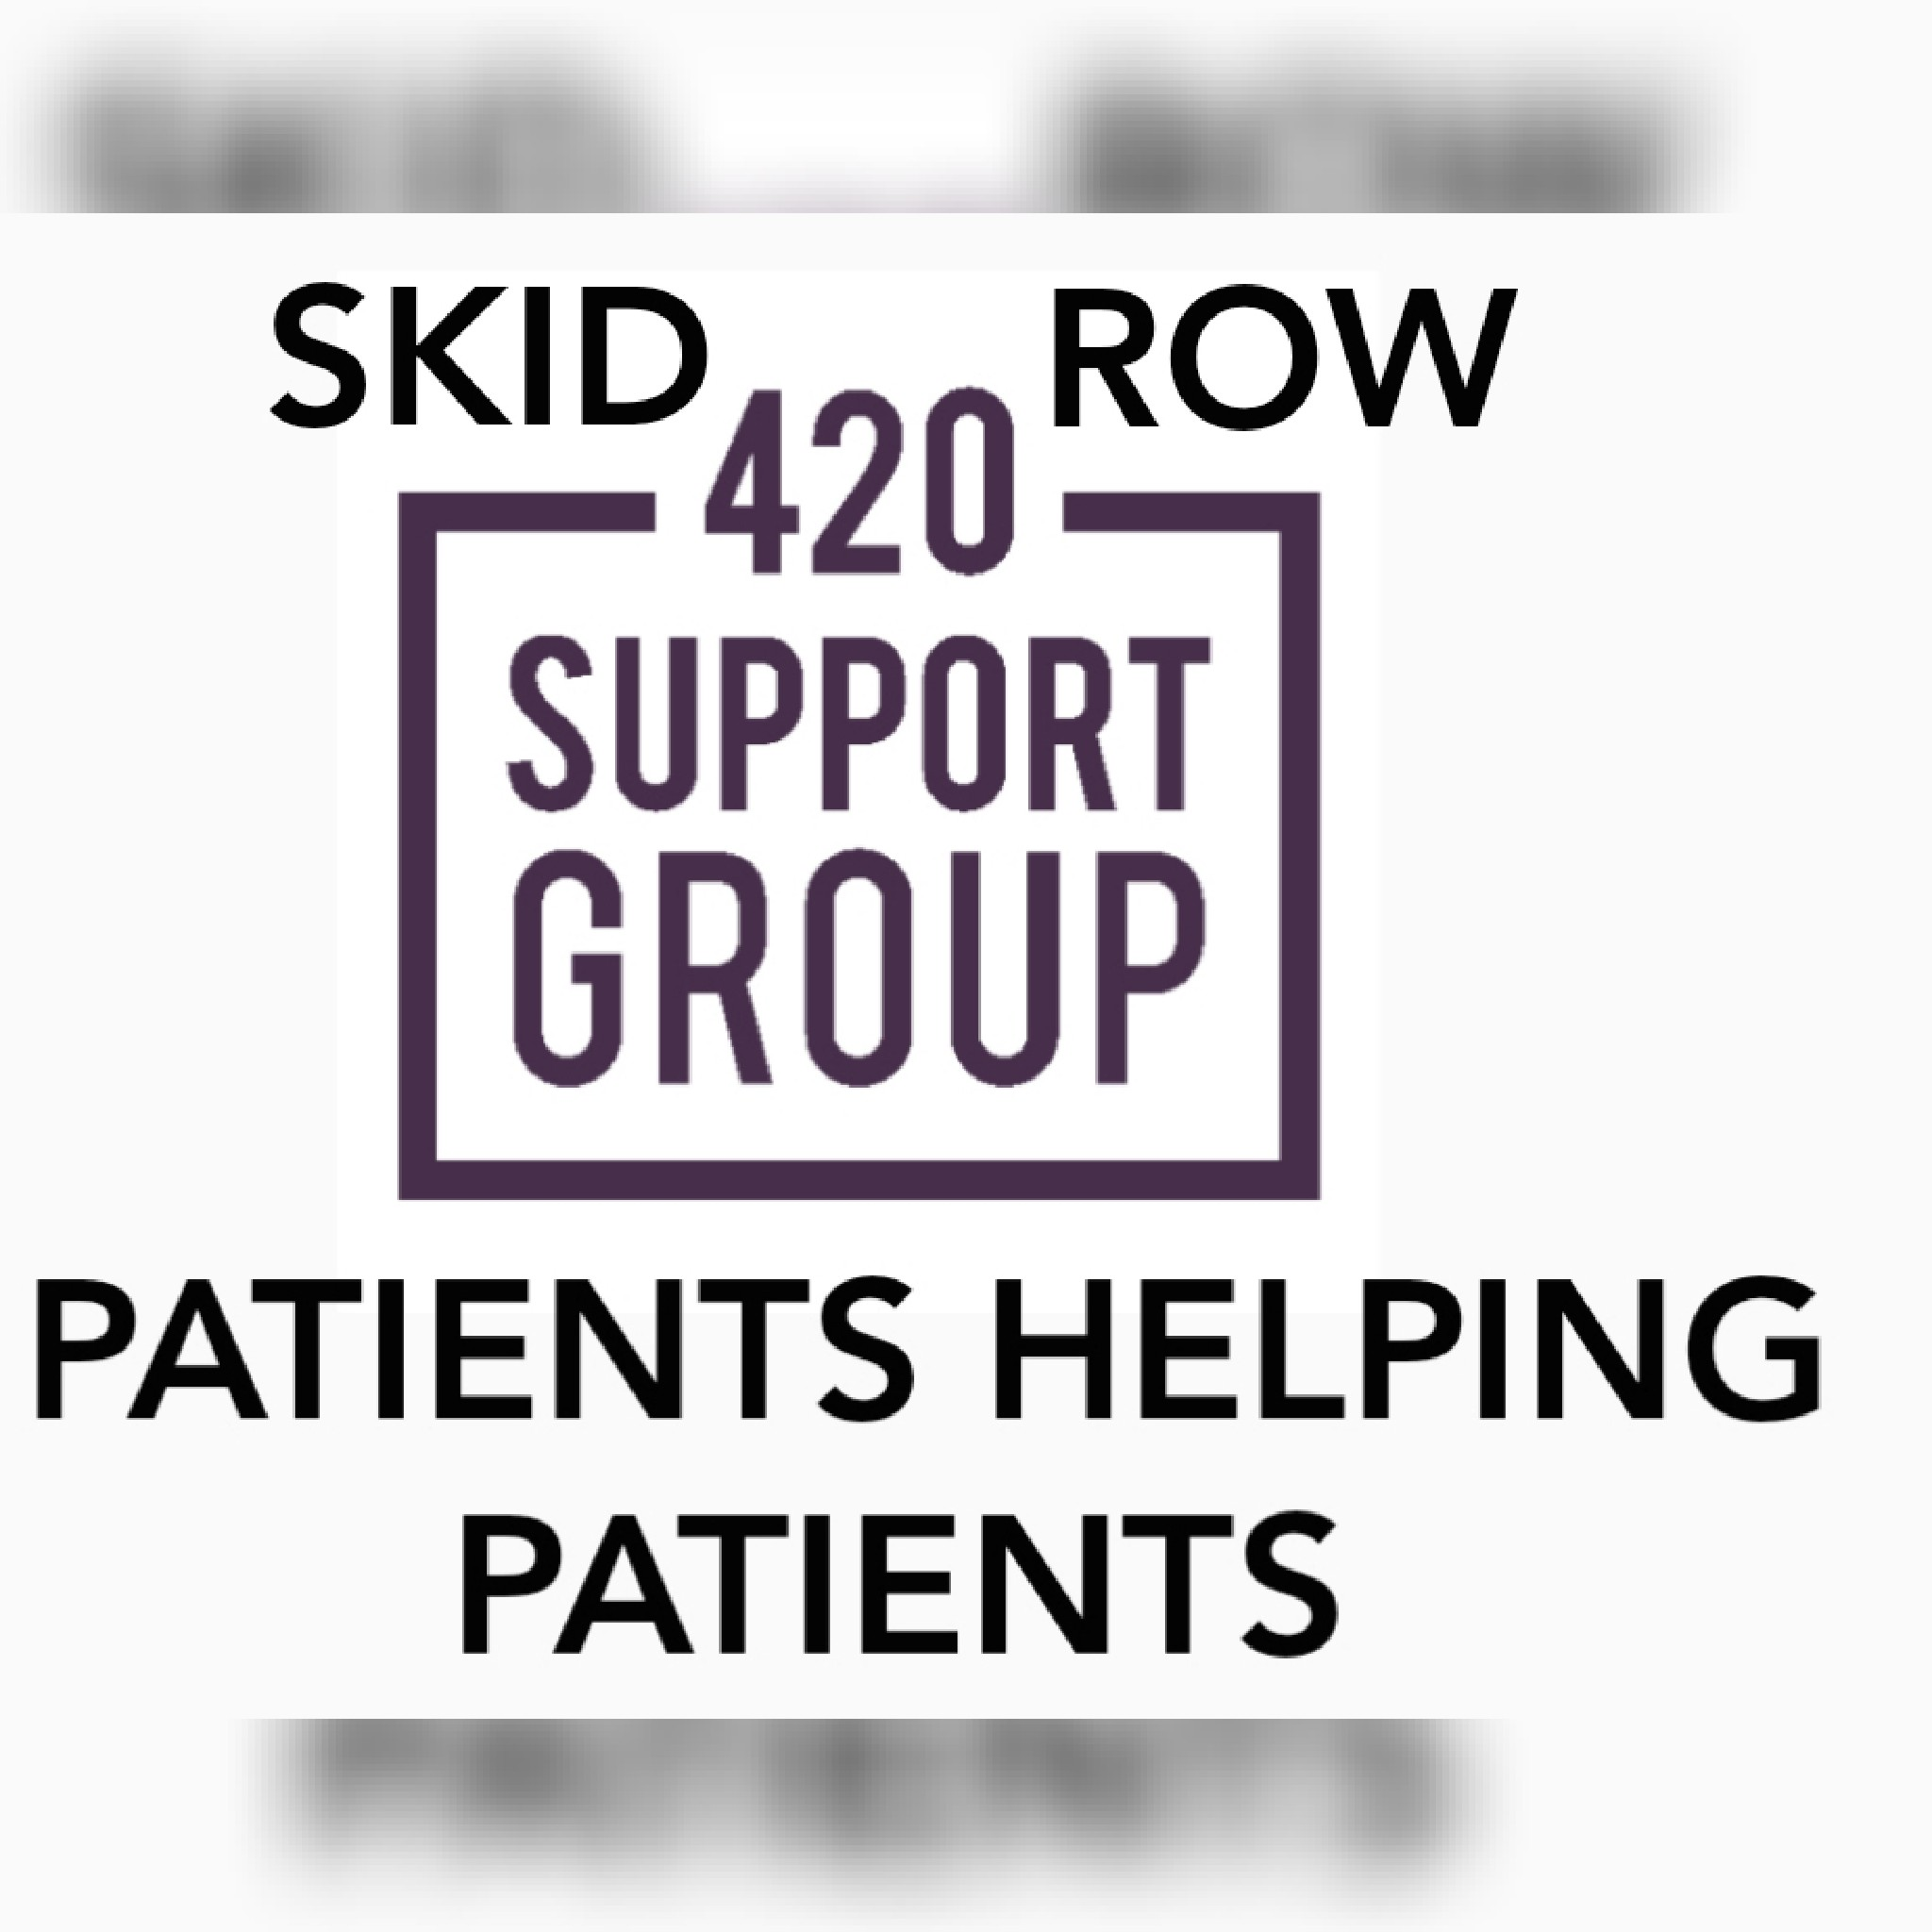 Skidrow 420 Support Group & Community Outreach